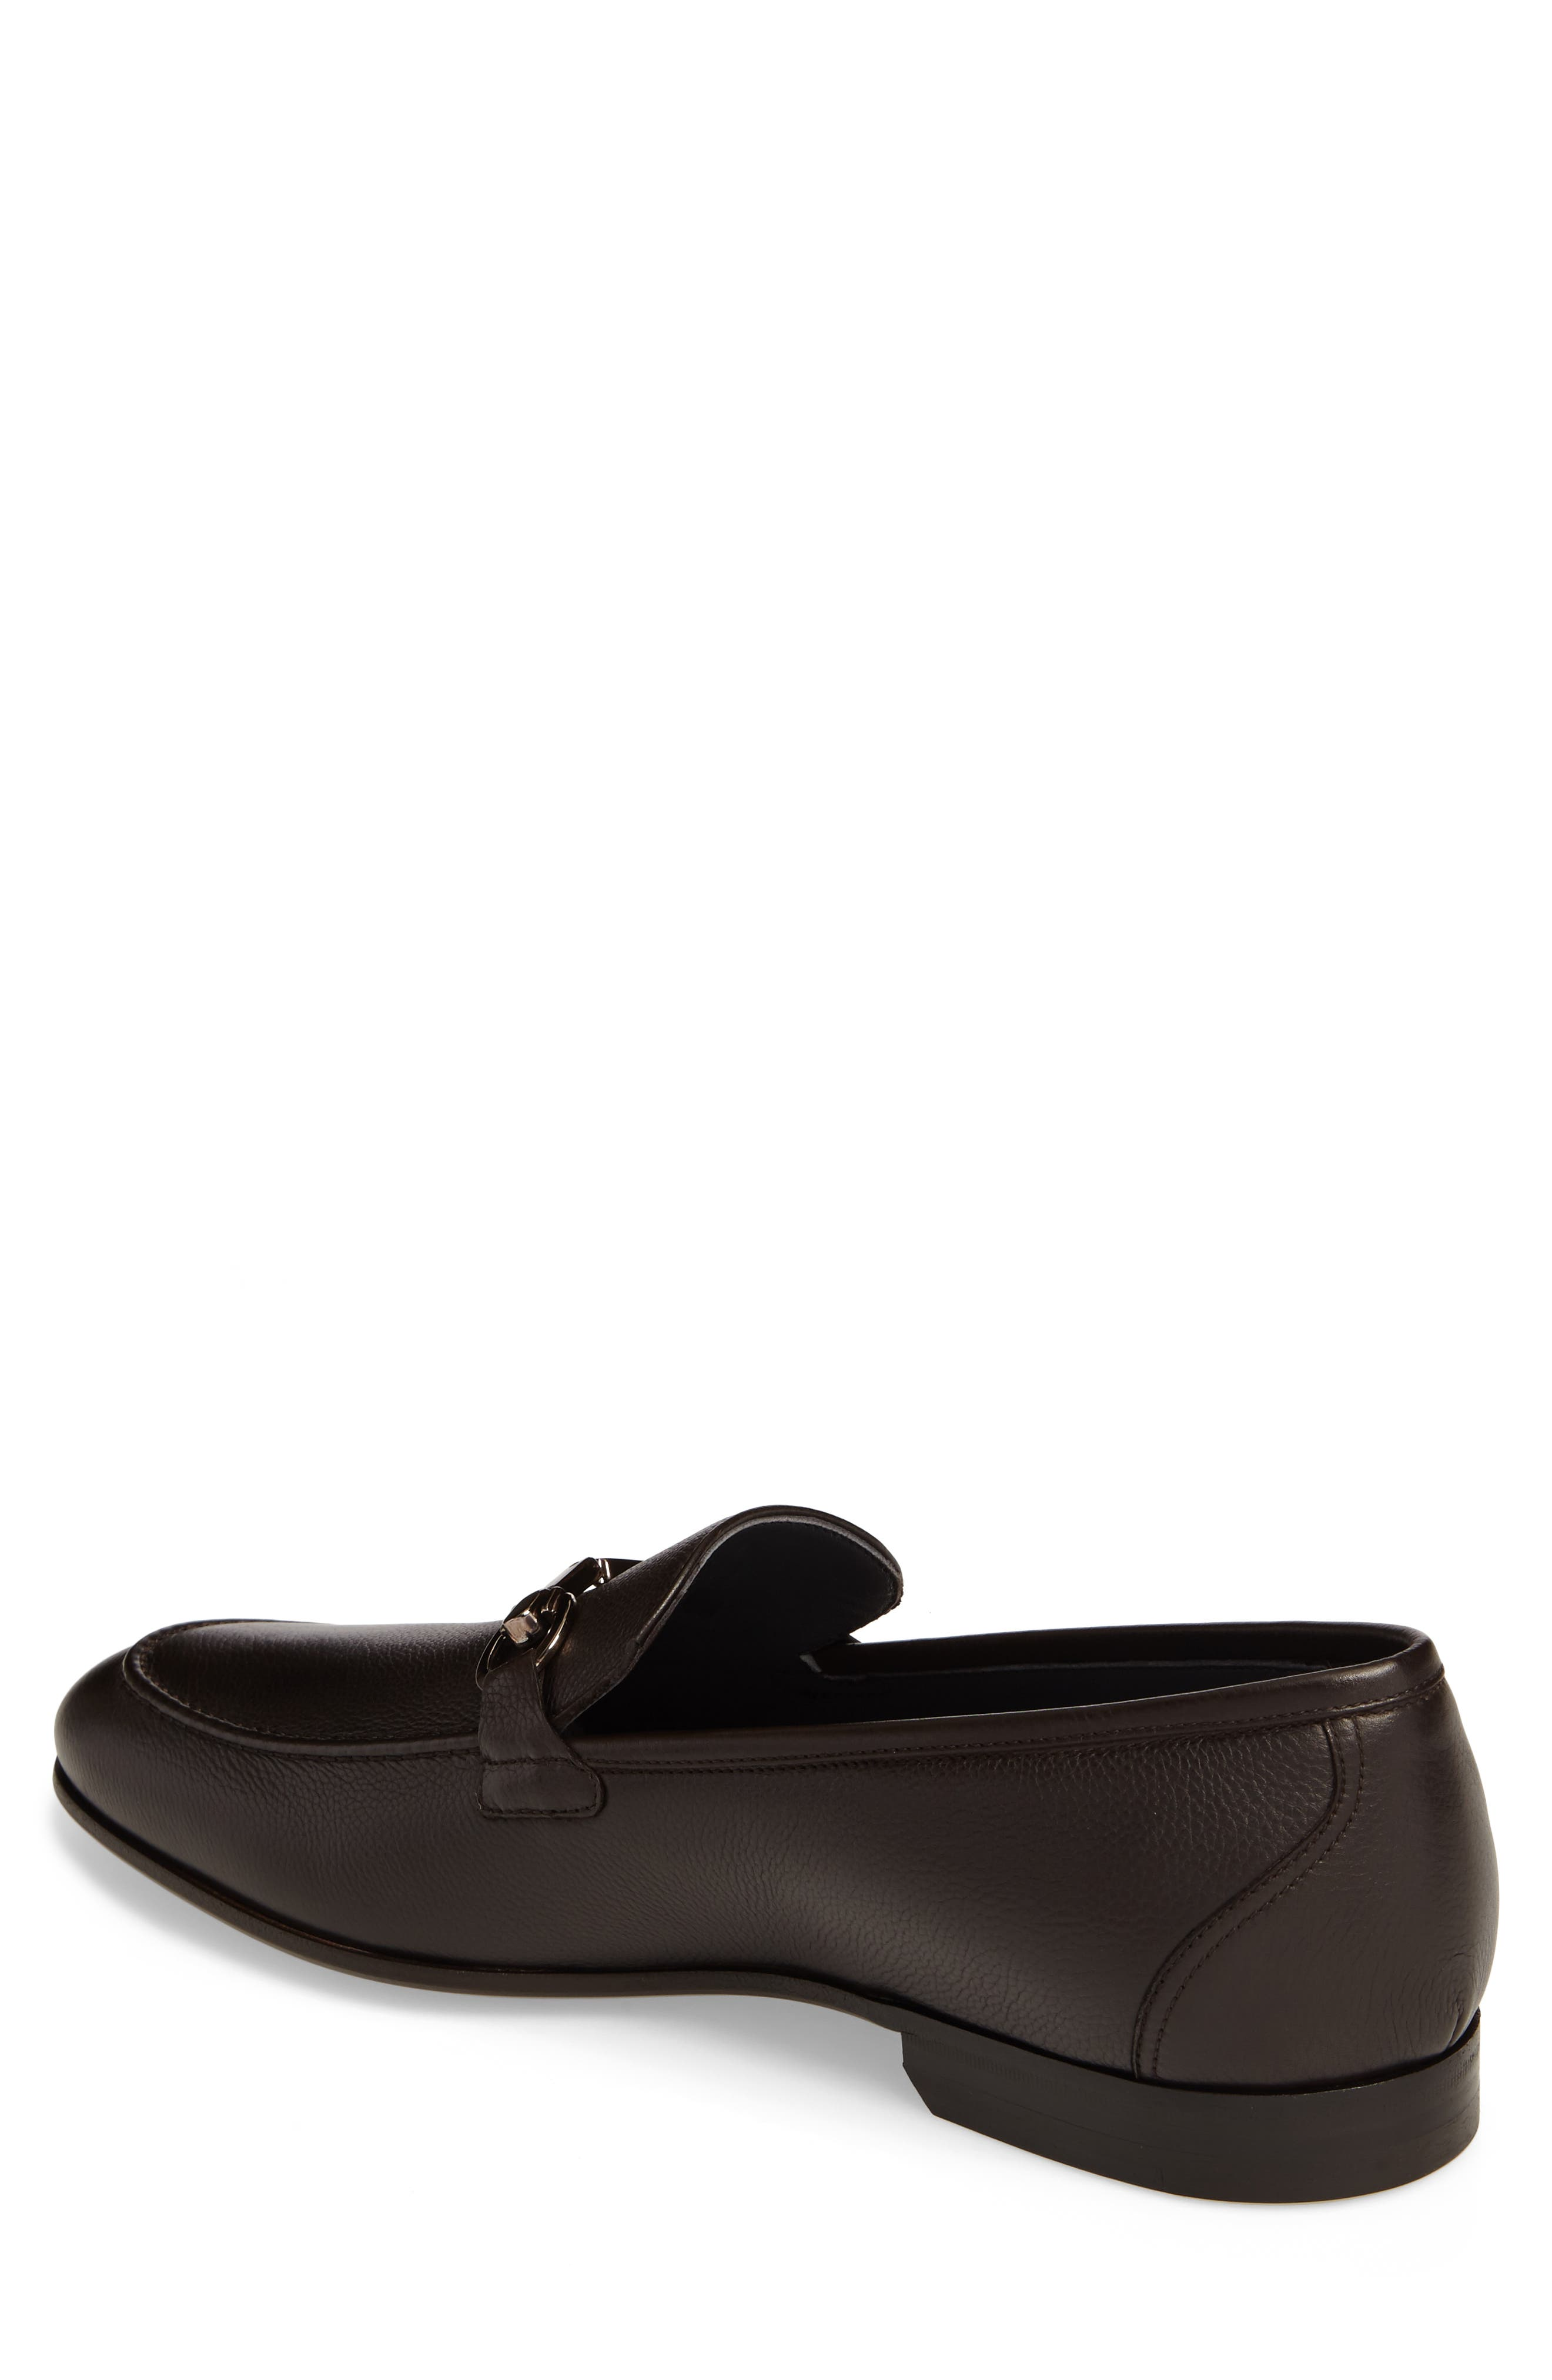 Brianza Bit Loafer,                             Alternate thumbnail 12, color,